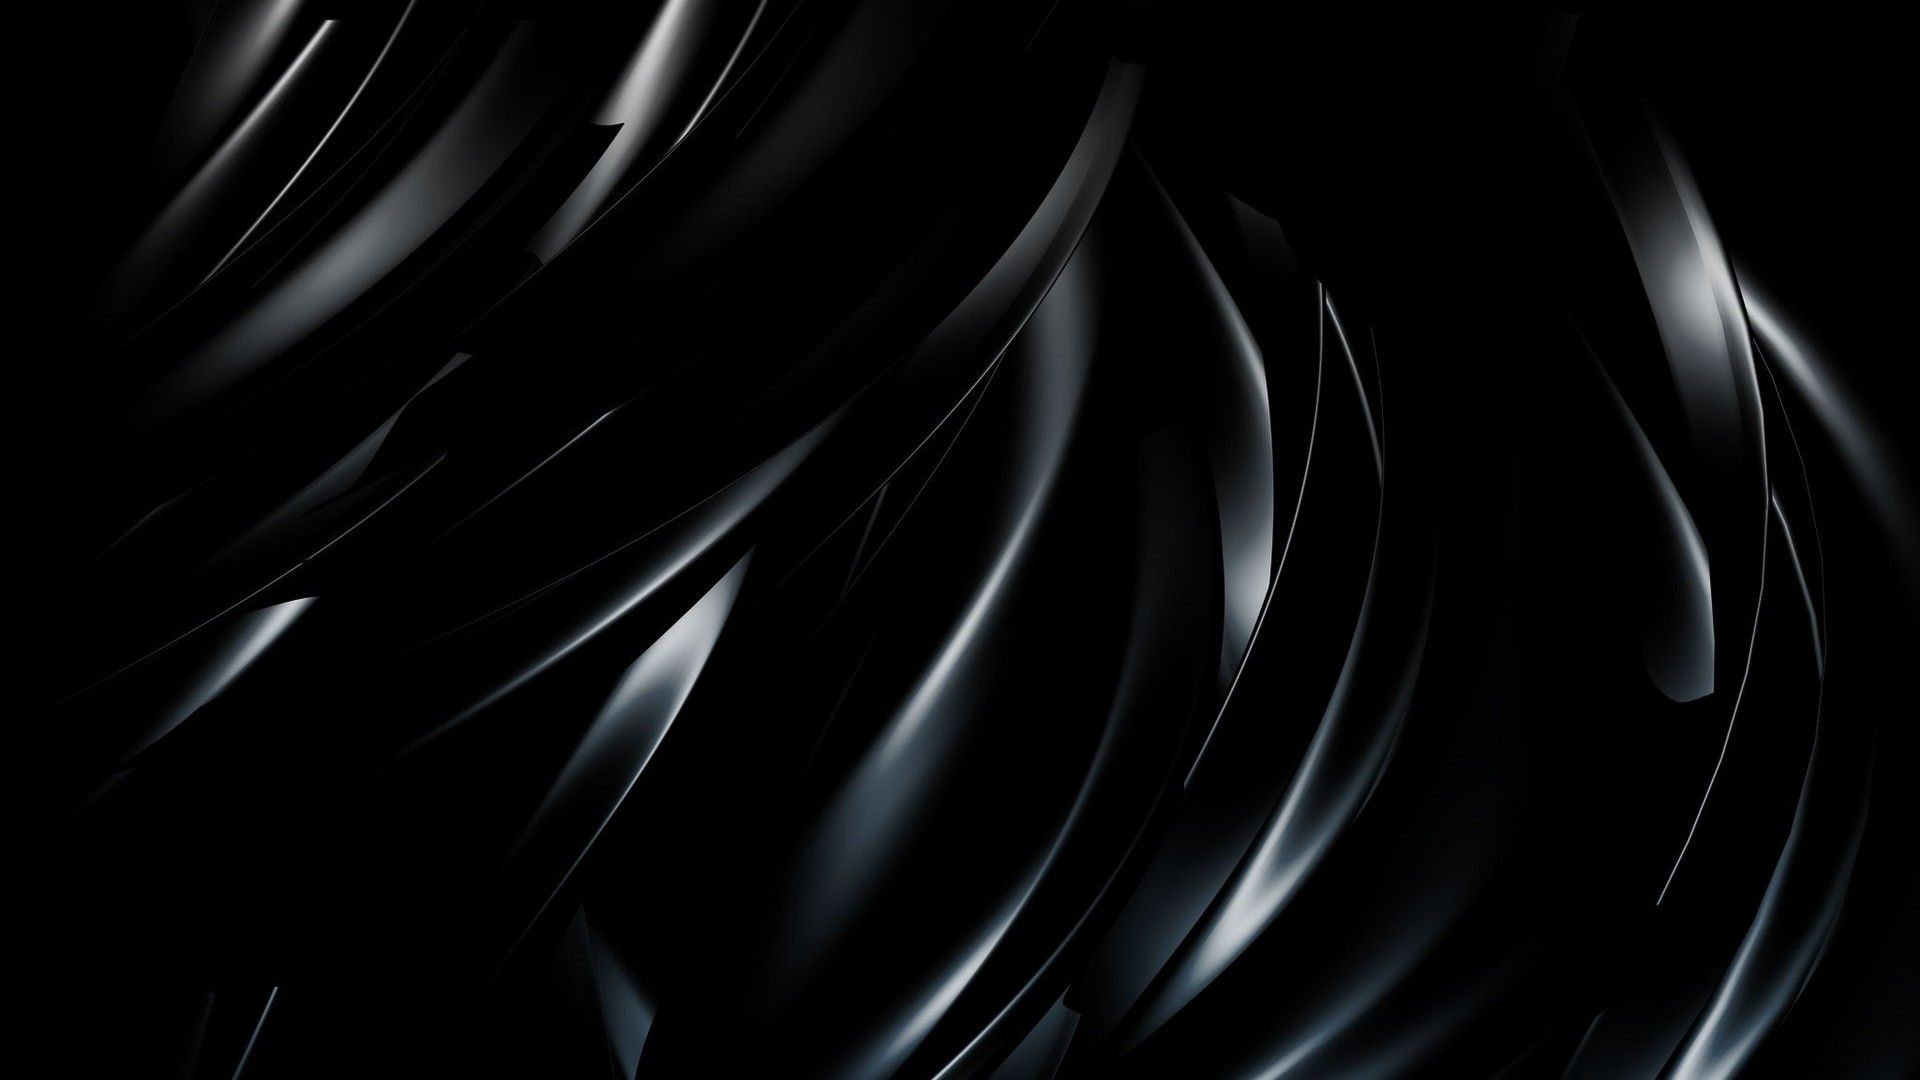 Dark Abstract Backgrounds 1920x1080 Hd Widescreen 11 Black Wallpaper Black Textured Wallpaper Black Background Wallpaper